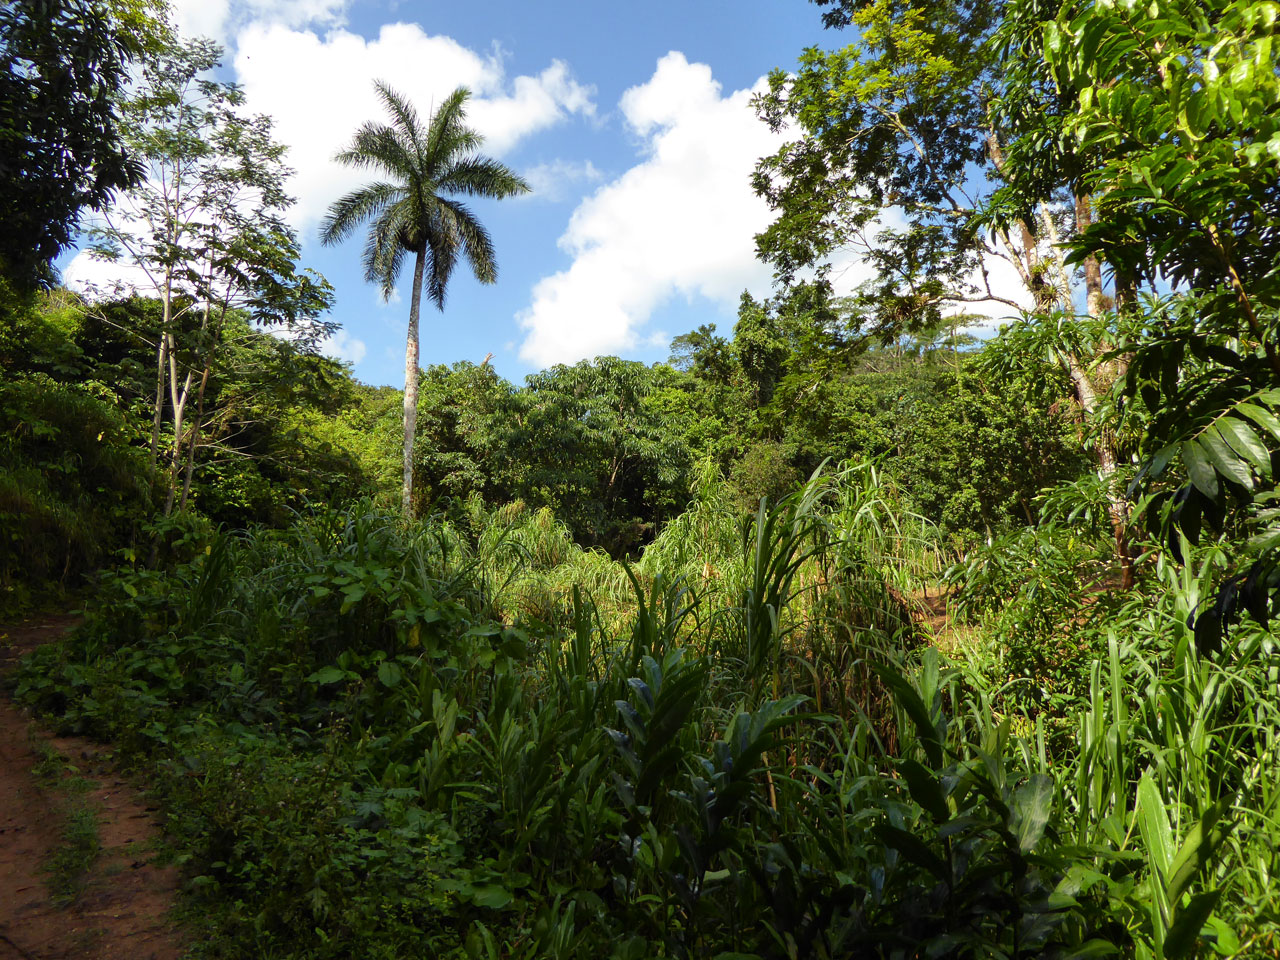 Jungle foliage in Topes de Collantes, Cuba